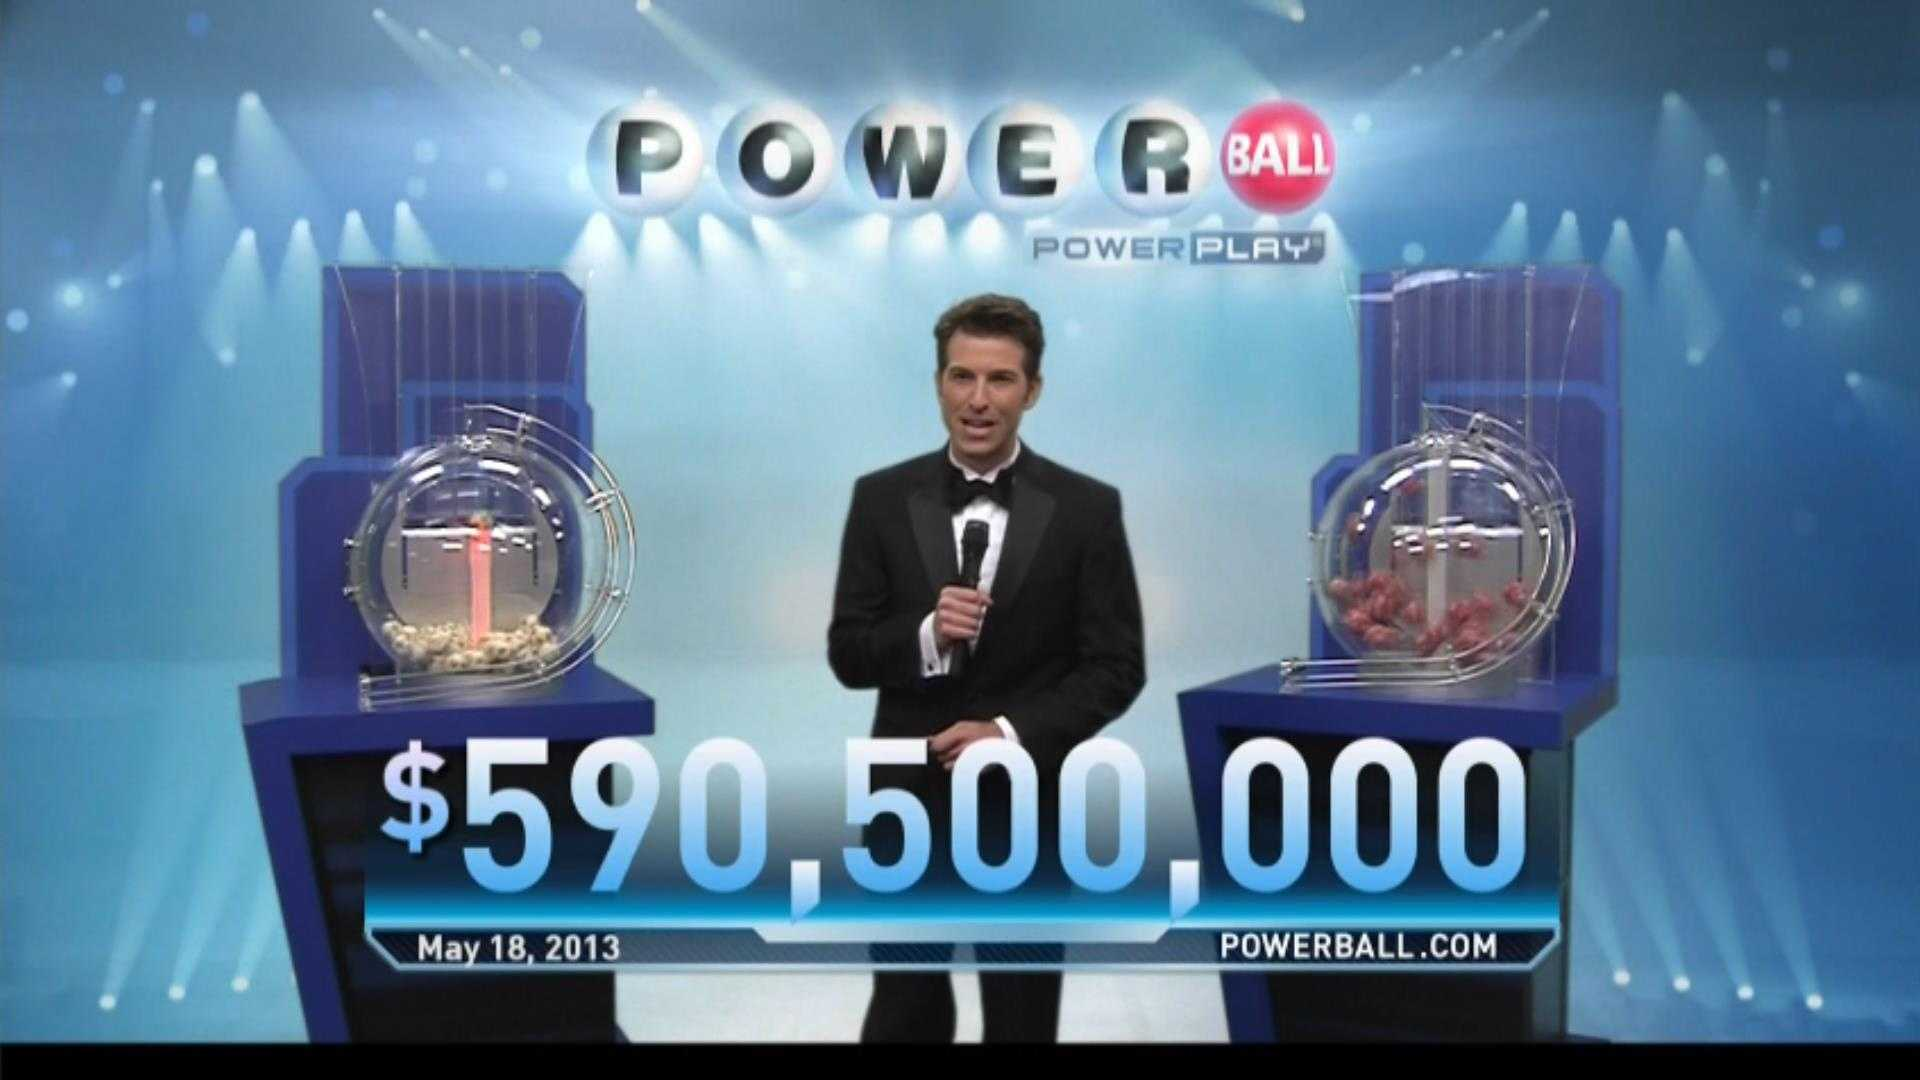 Powerball screencap